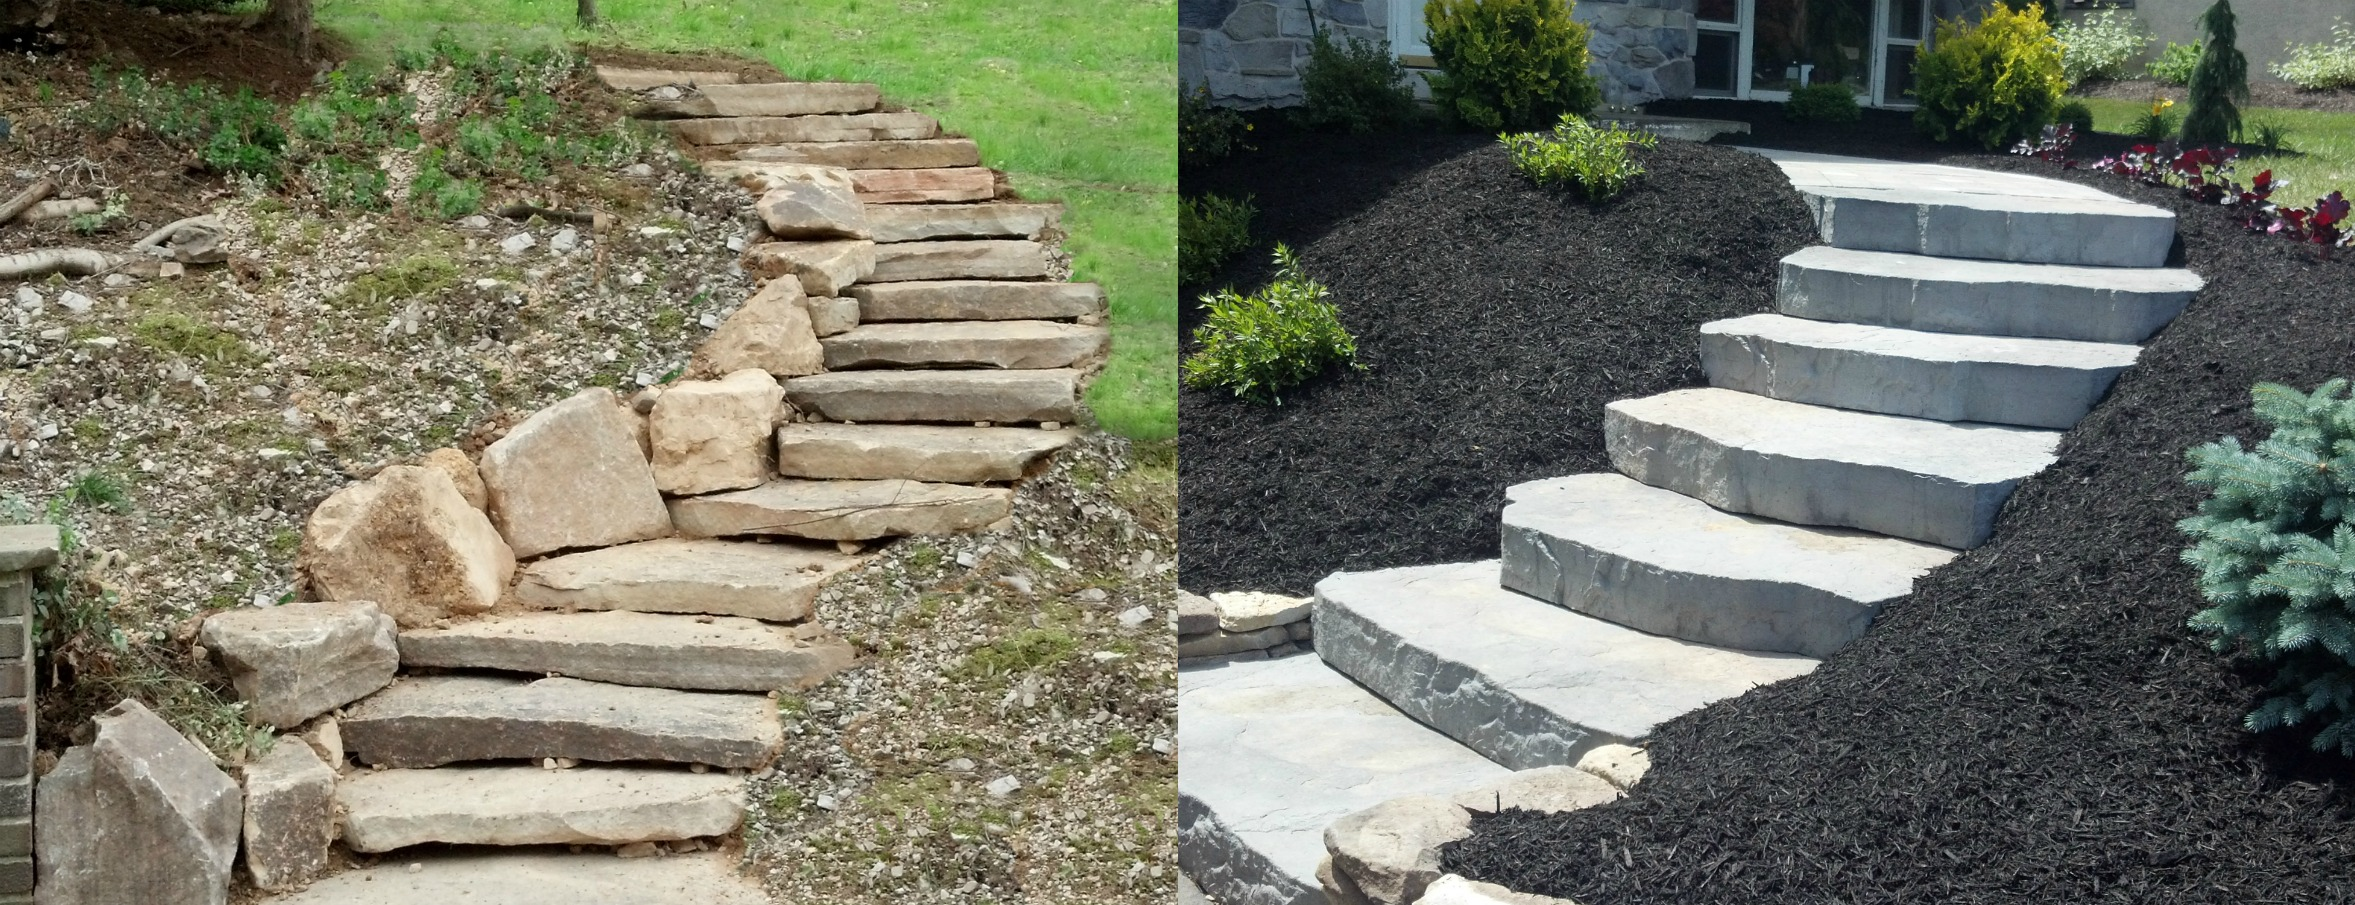 Natural Building Stone Steps : Hardscaping services houp landscaping inc